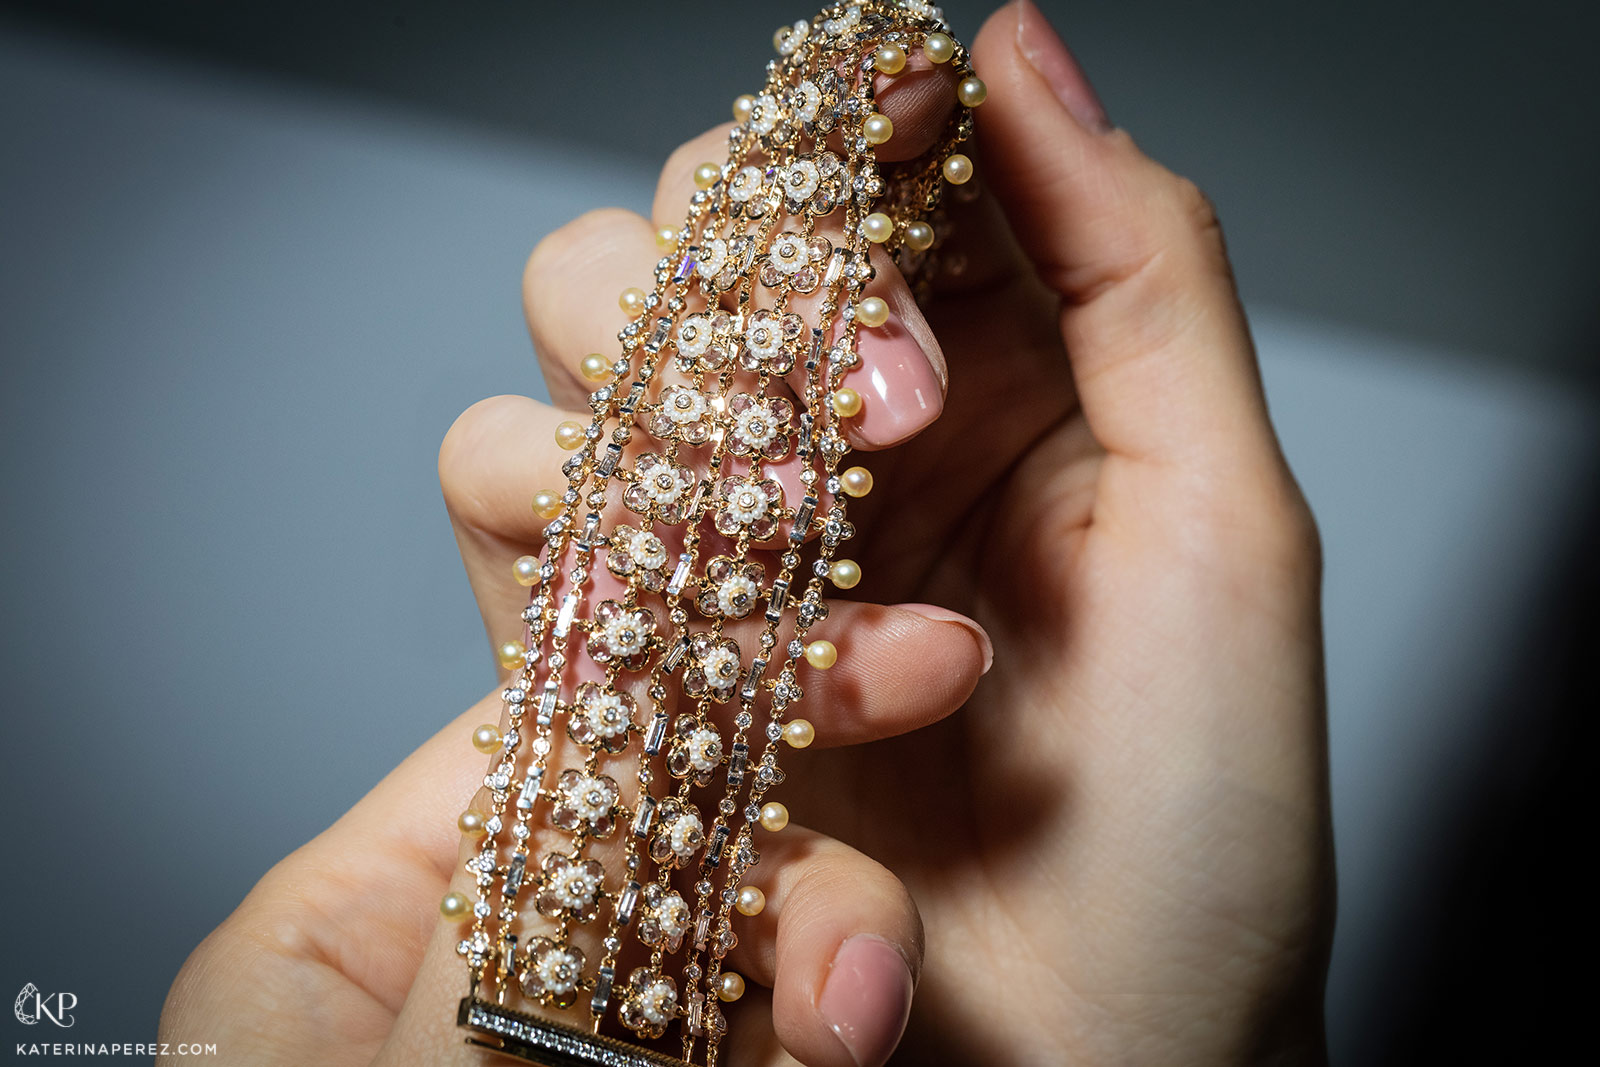 Moksh 'Empress' bracelet with 400 pearls and a total of more than 9ct diamonds in yellow gold